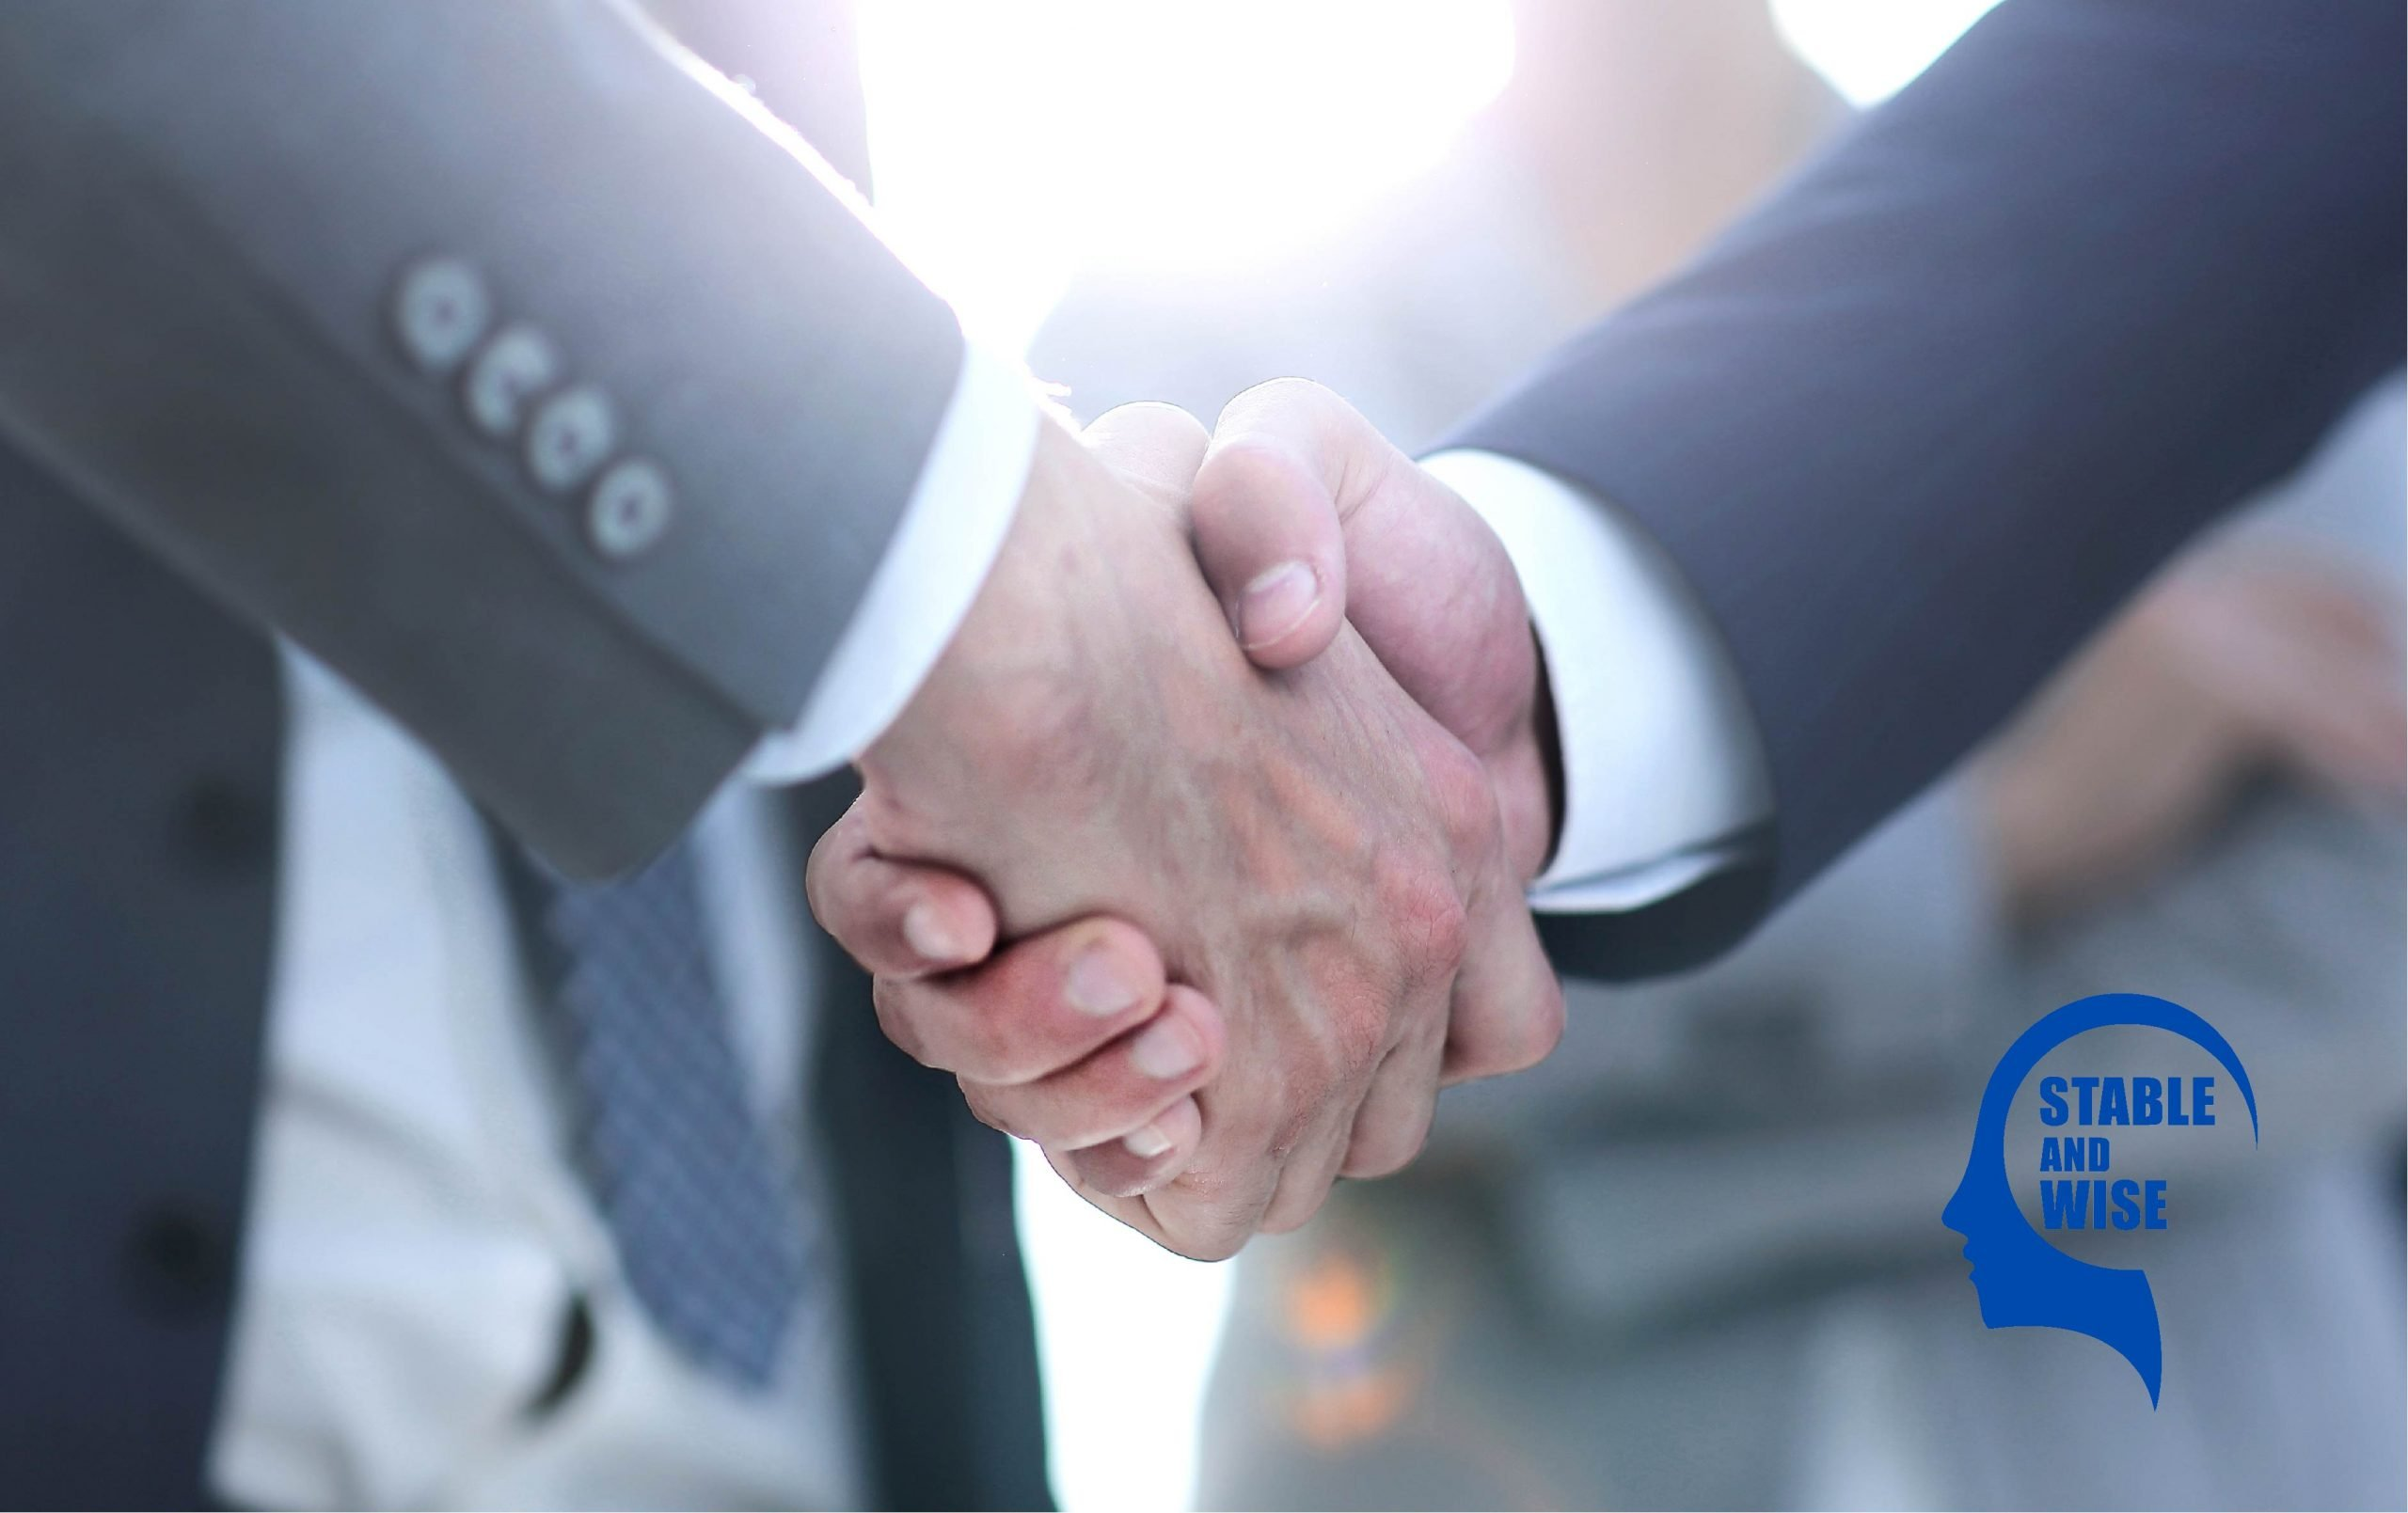 Career connection: Mature Aged Workers shaking hands